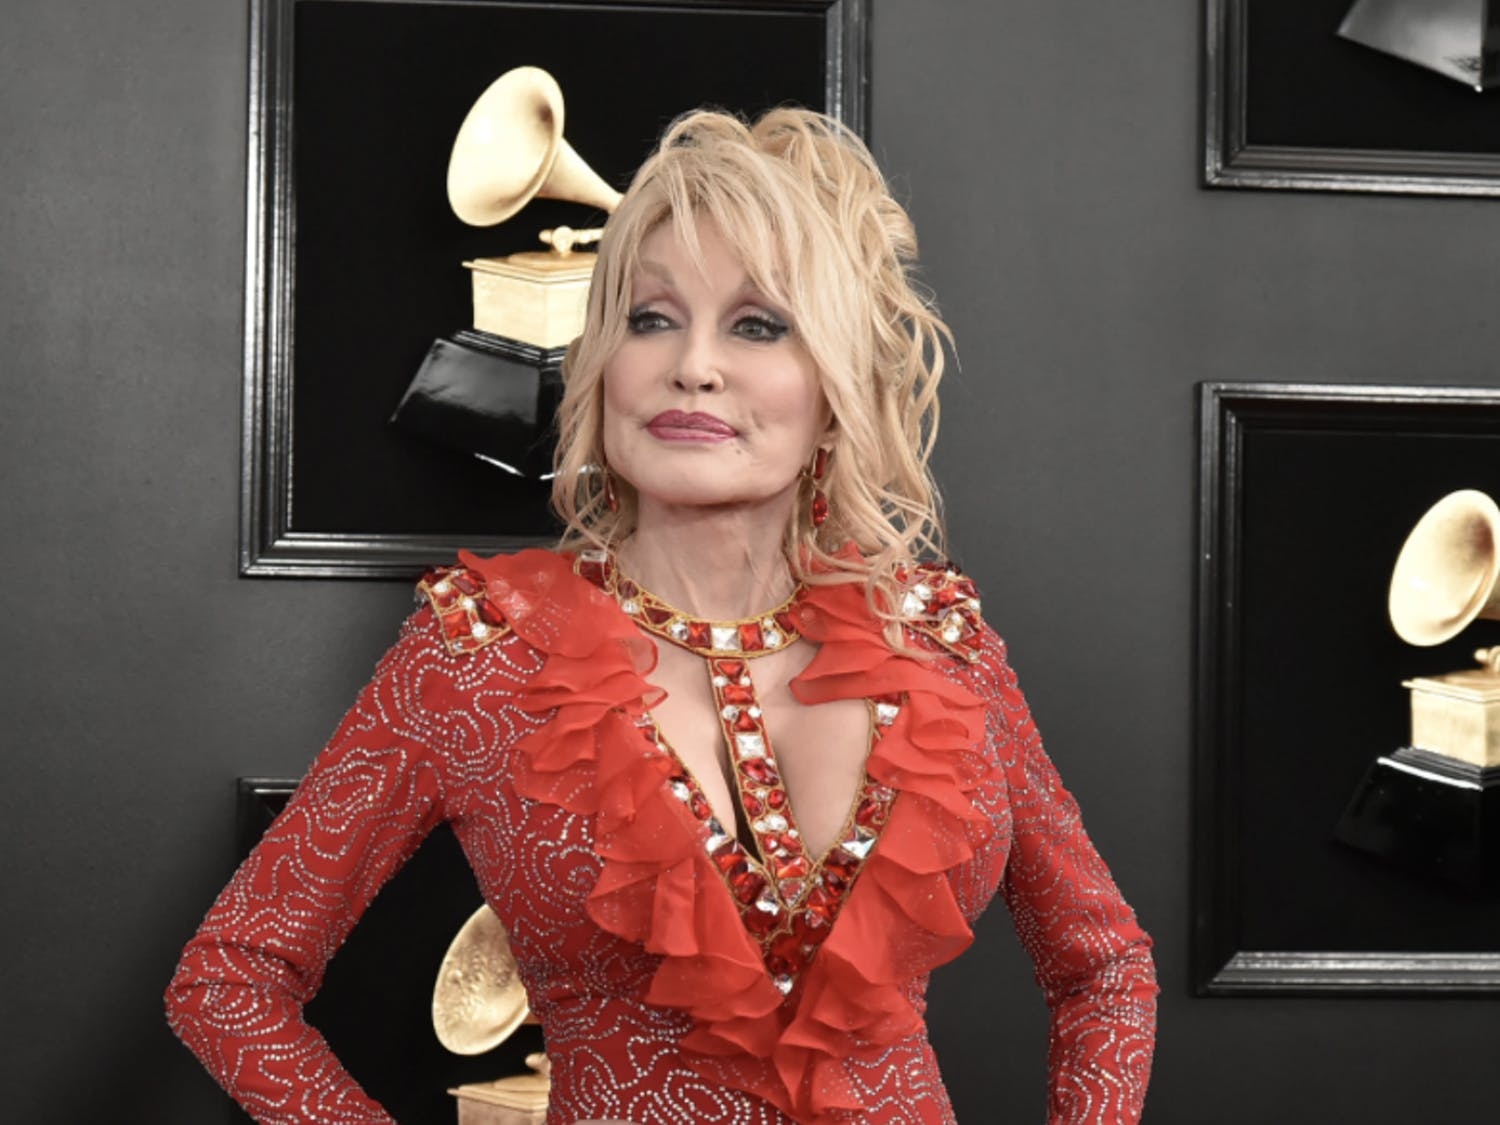 The country legend has a reputation for big hair and brassy vocals, but her charity work is what sets her apart from her peers.